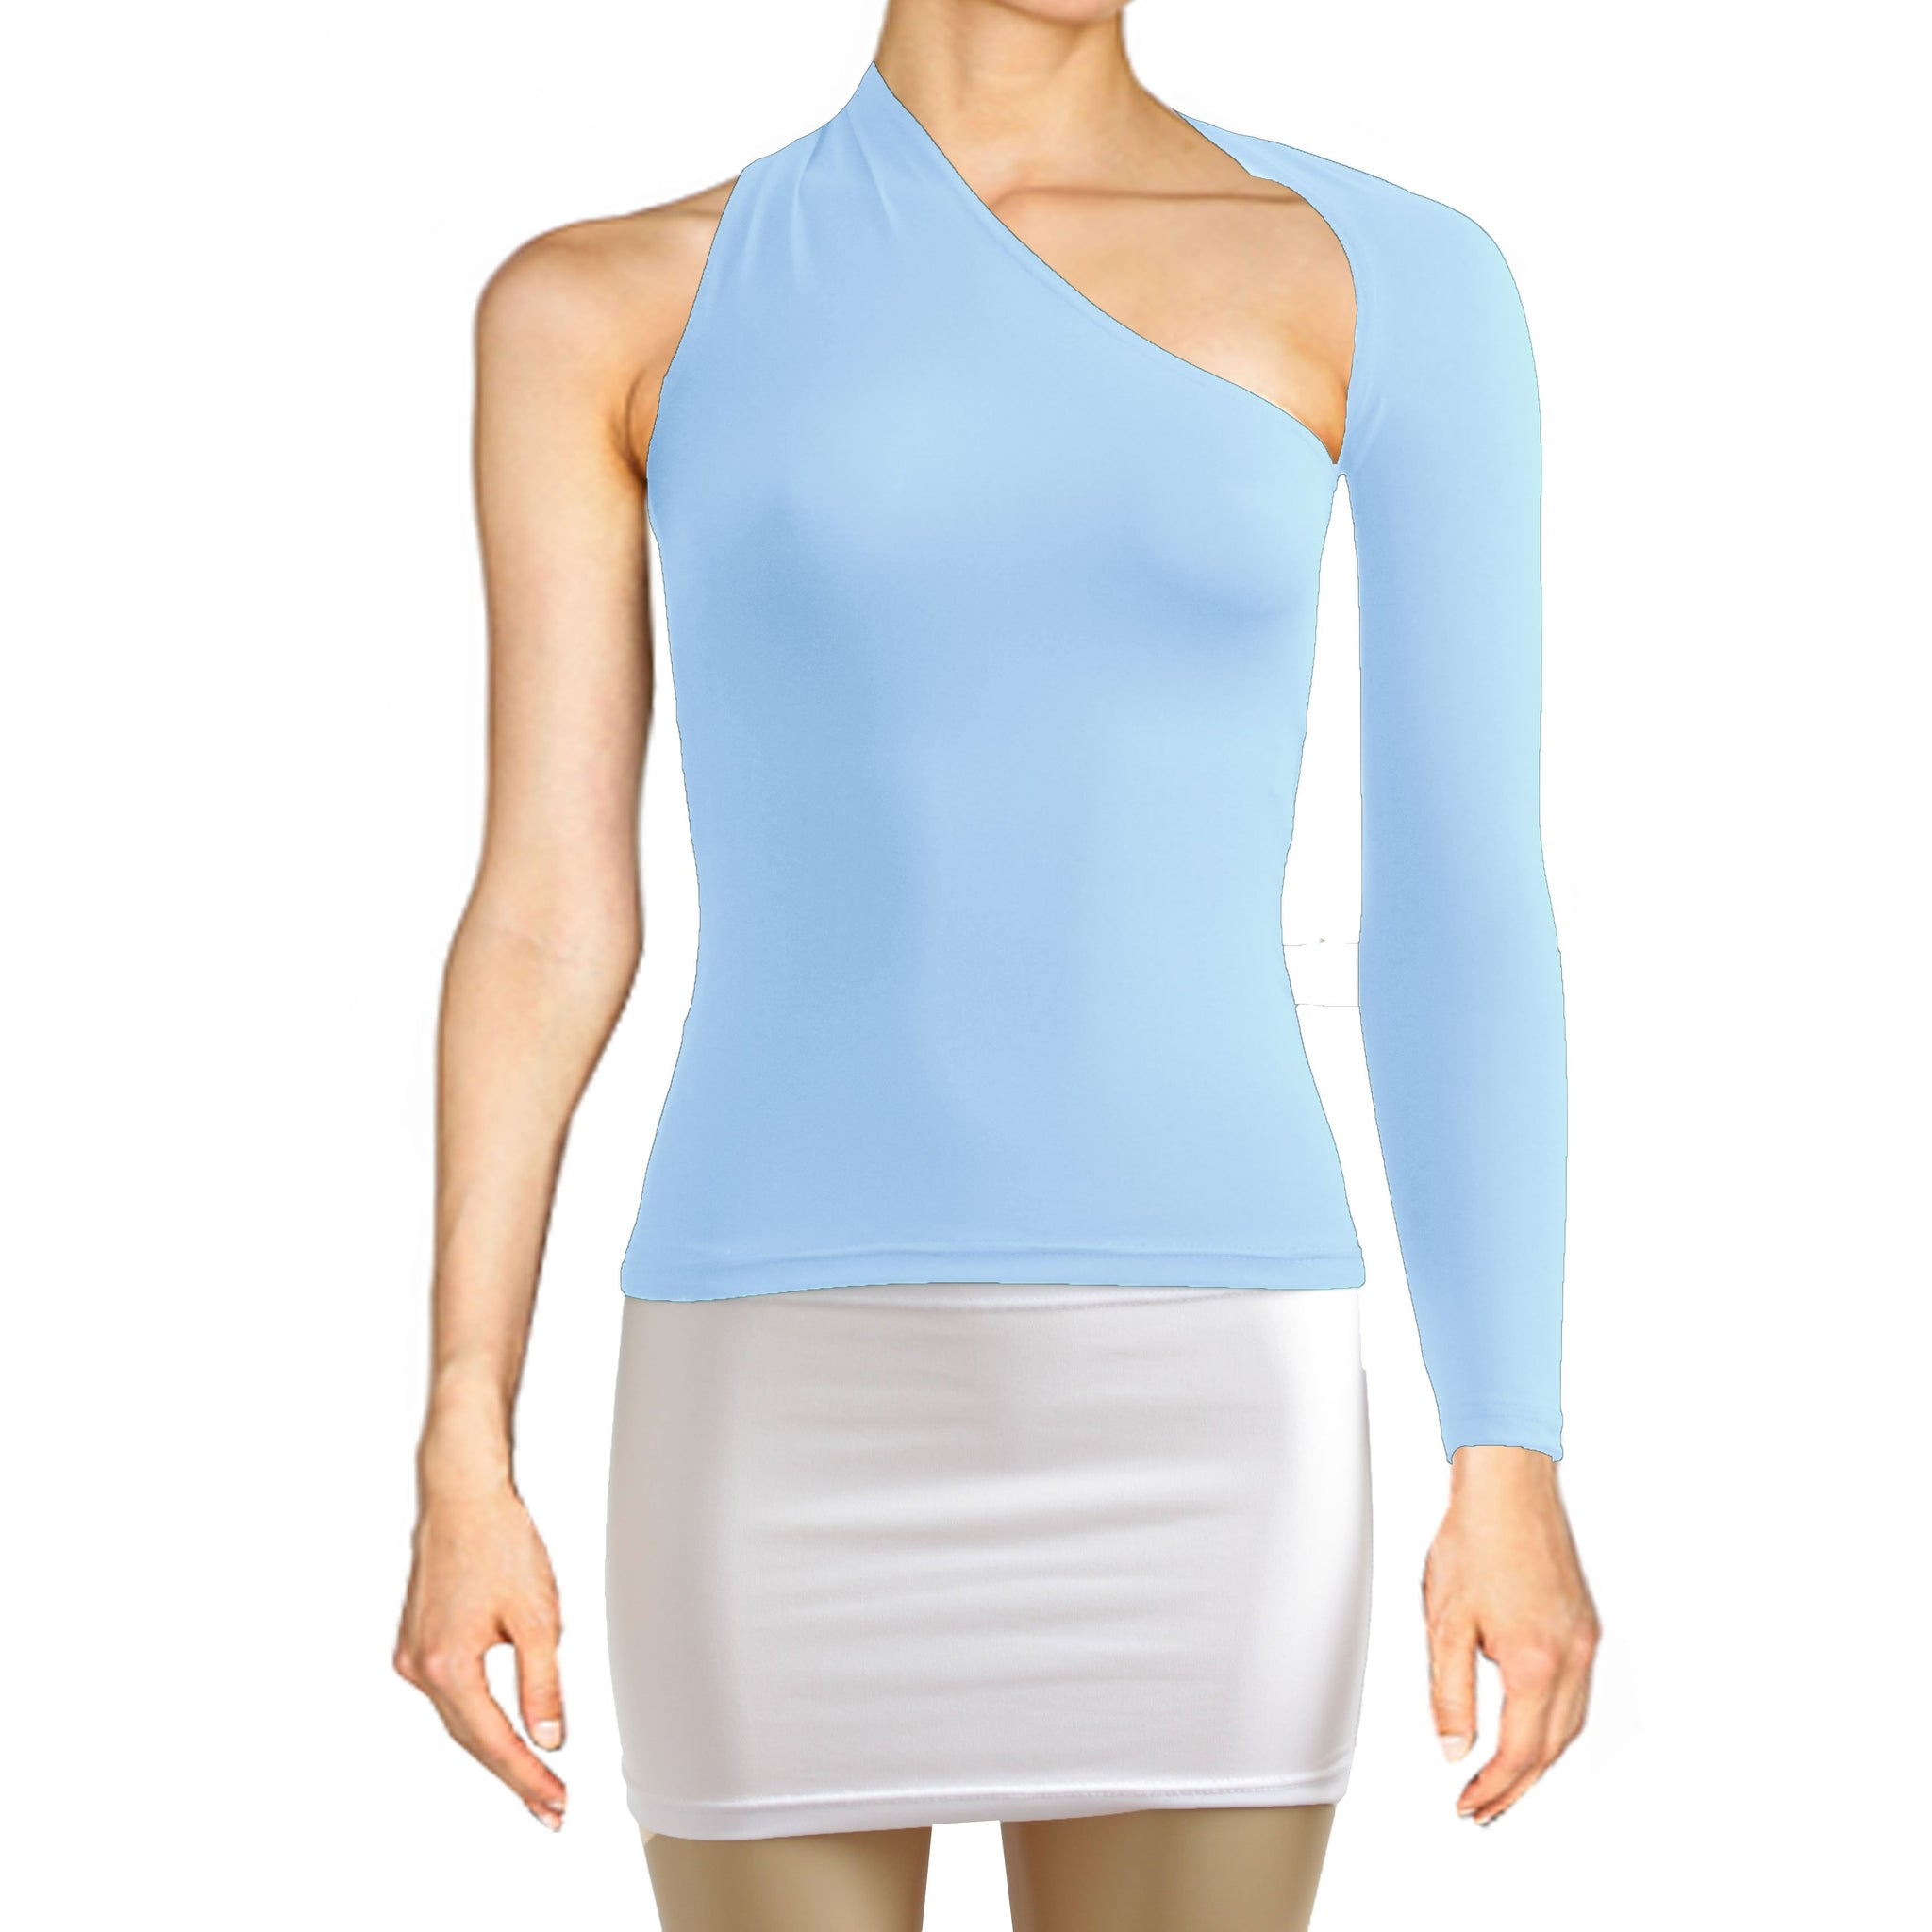 Baby blue backless top One shoulder shirt Long sleeve sexy top Festival shirt Rave party top